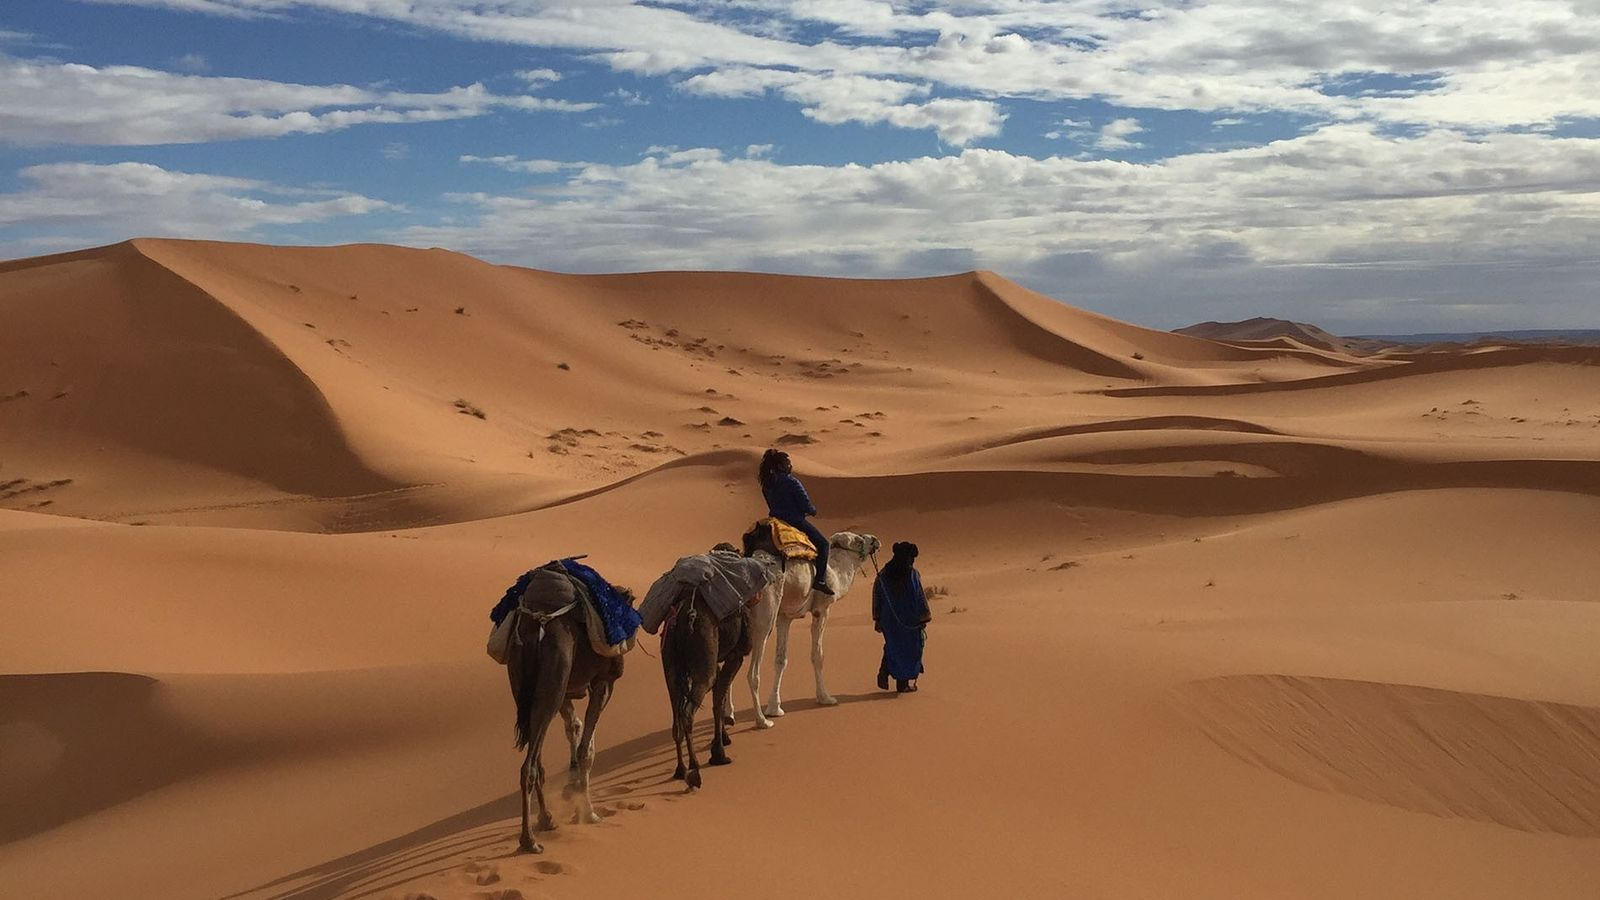 Alice Morrison trekking through Morocco